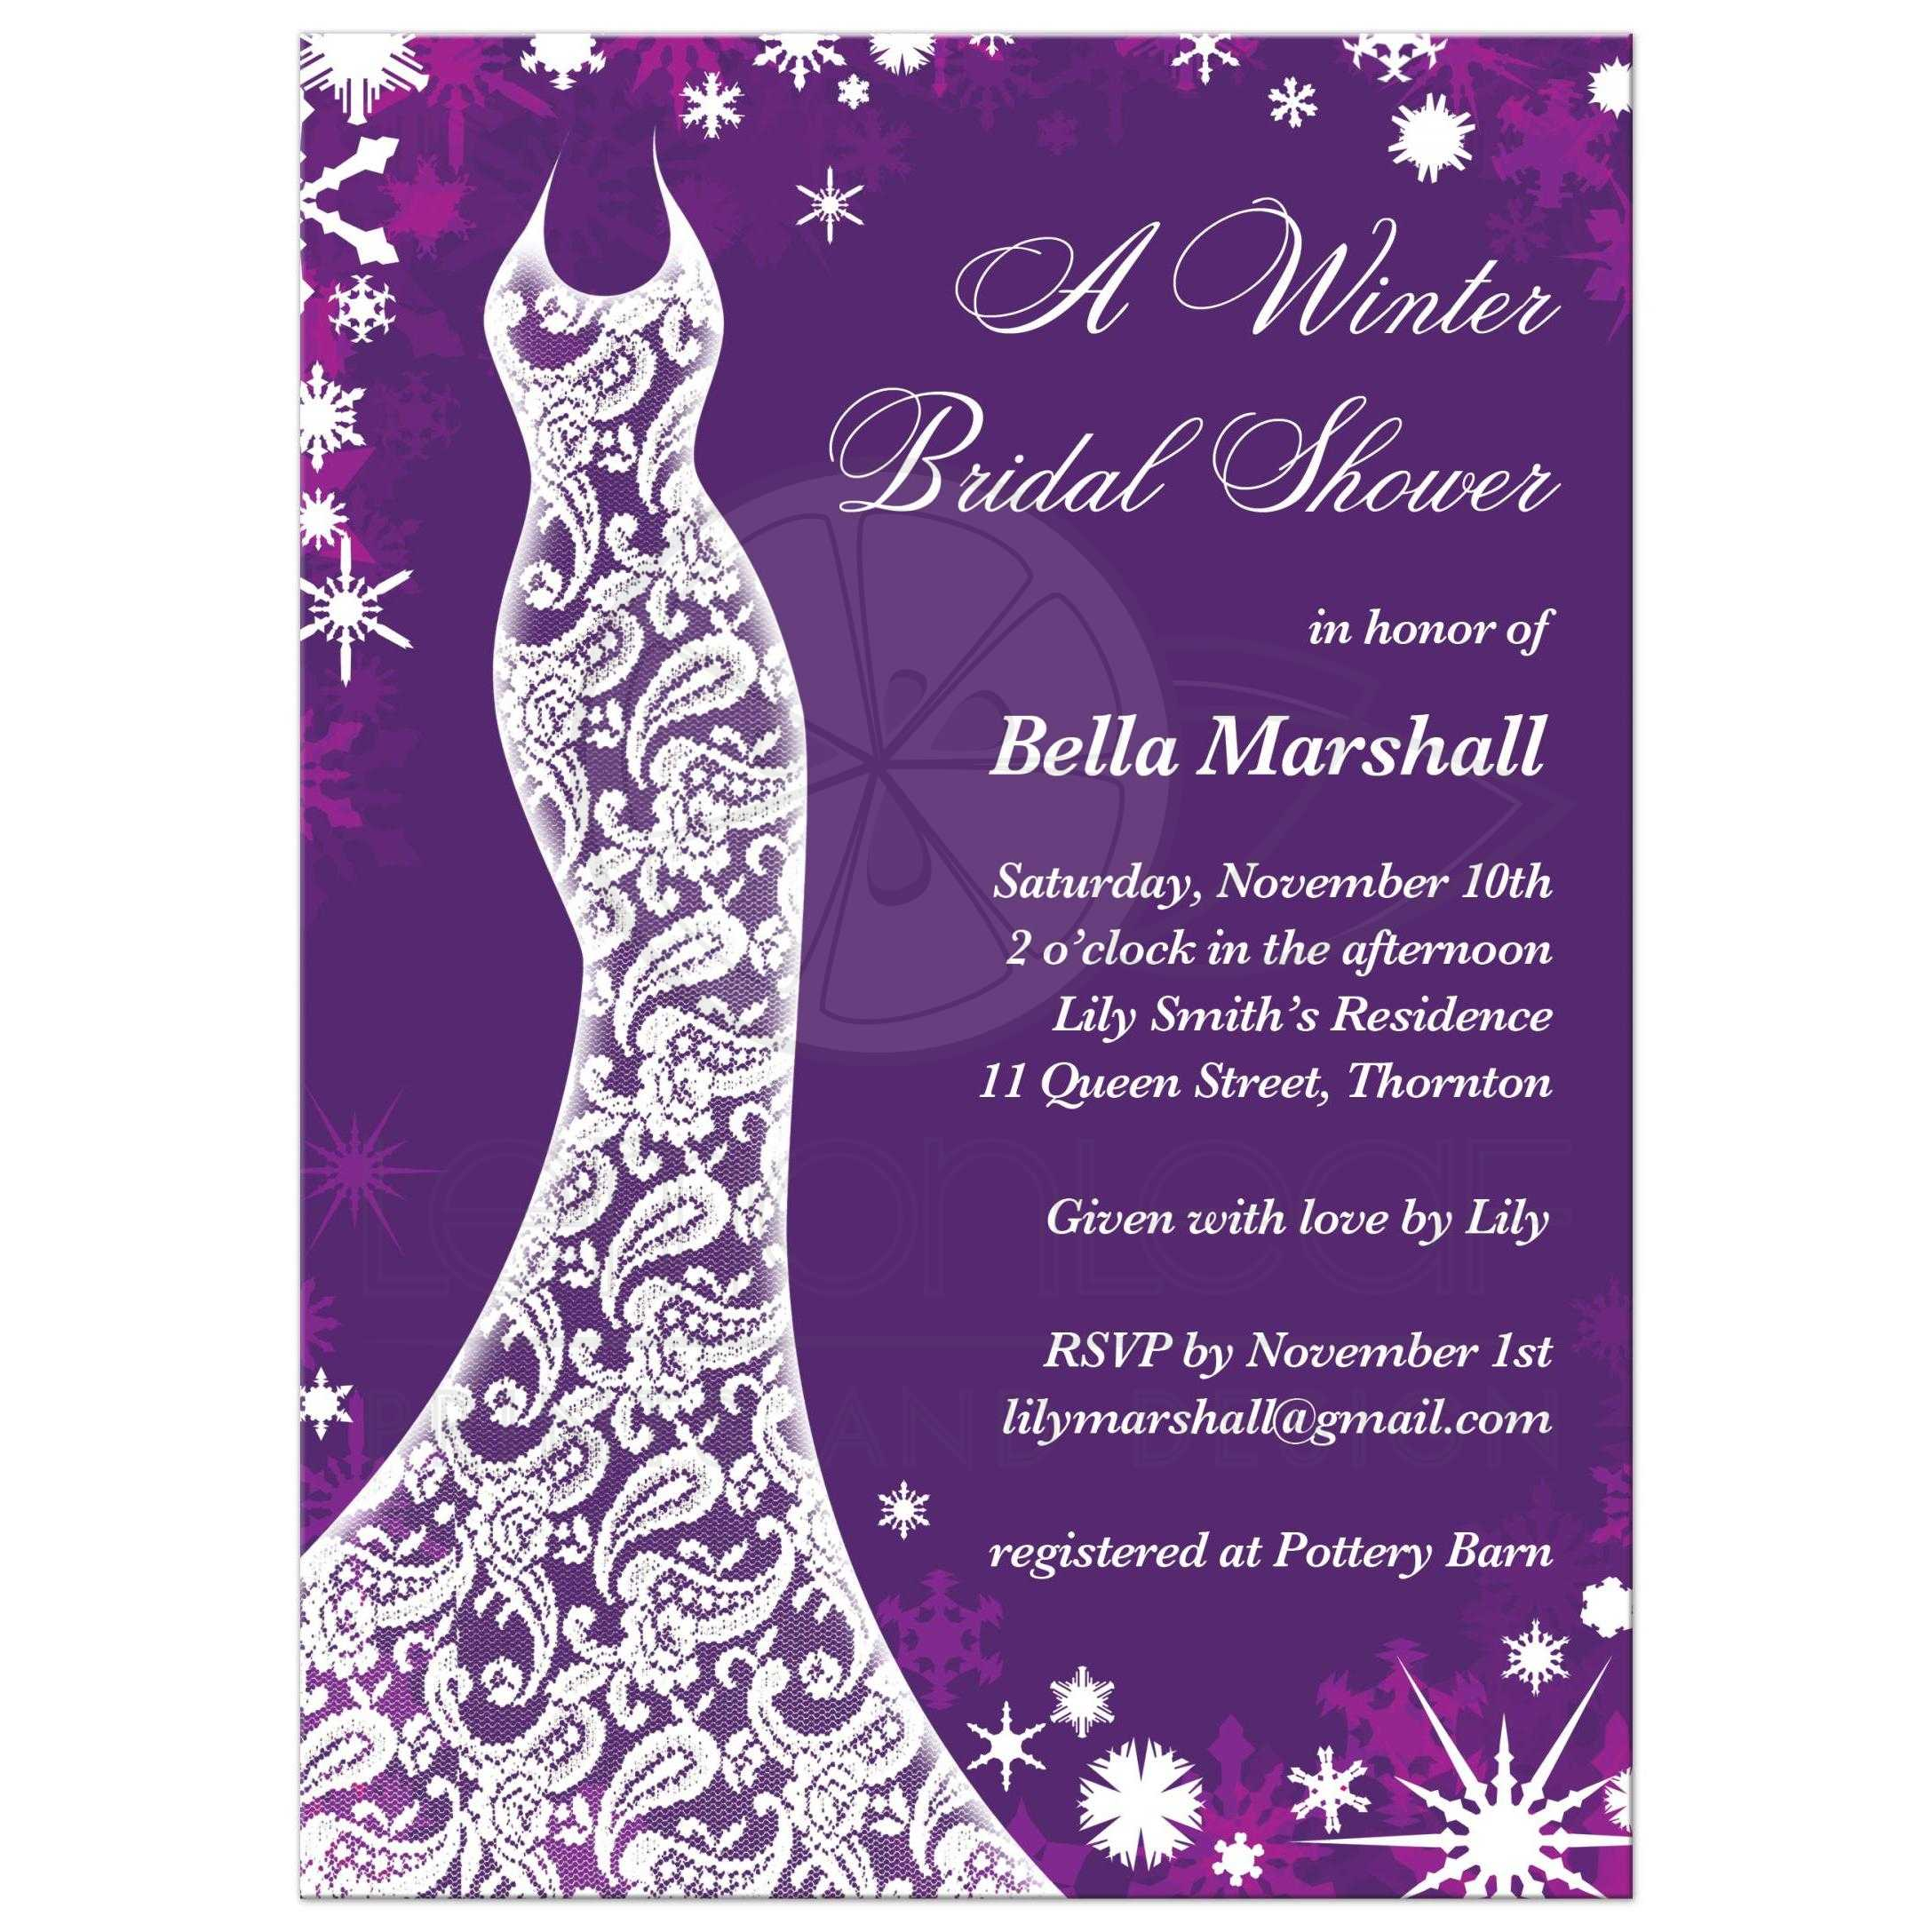 this winter bridal shower invitation is decorated with delicate snowflakes and a lacy wedding dress on